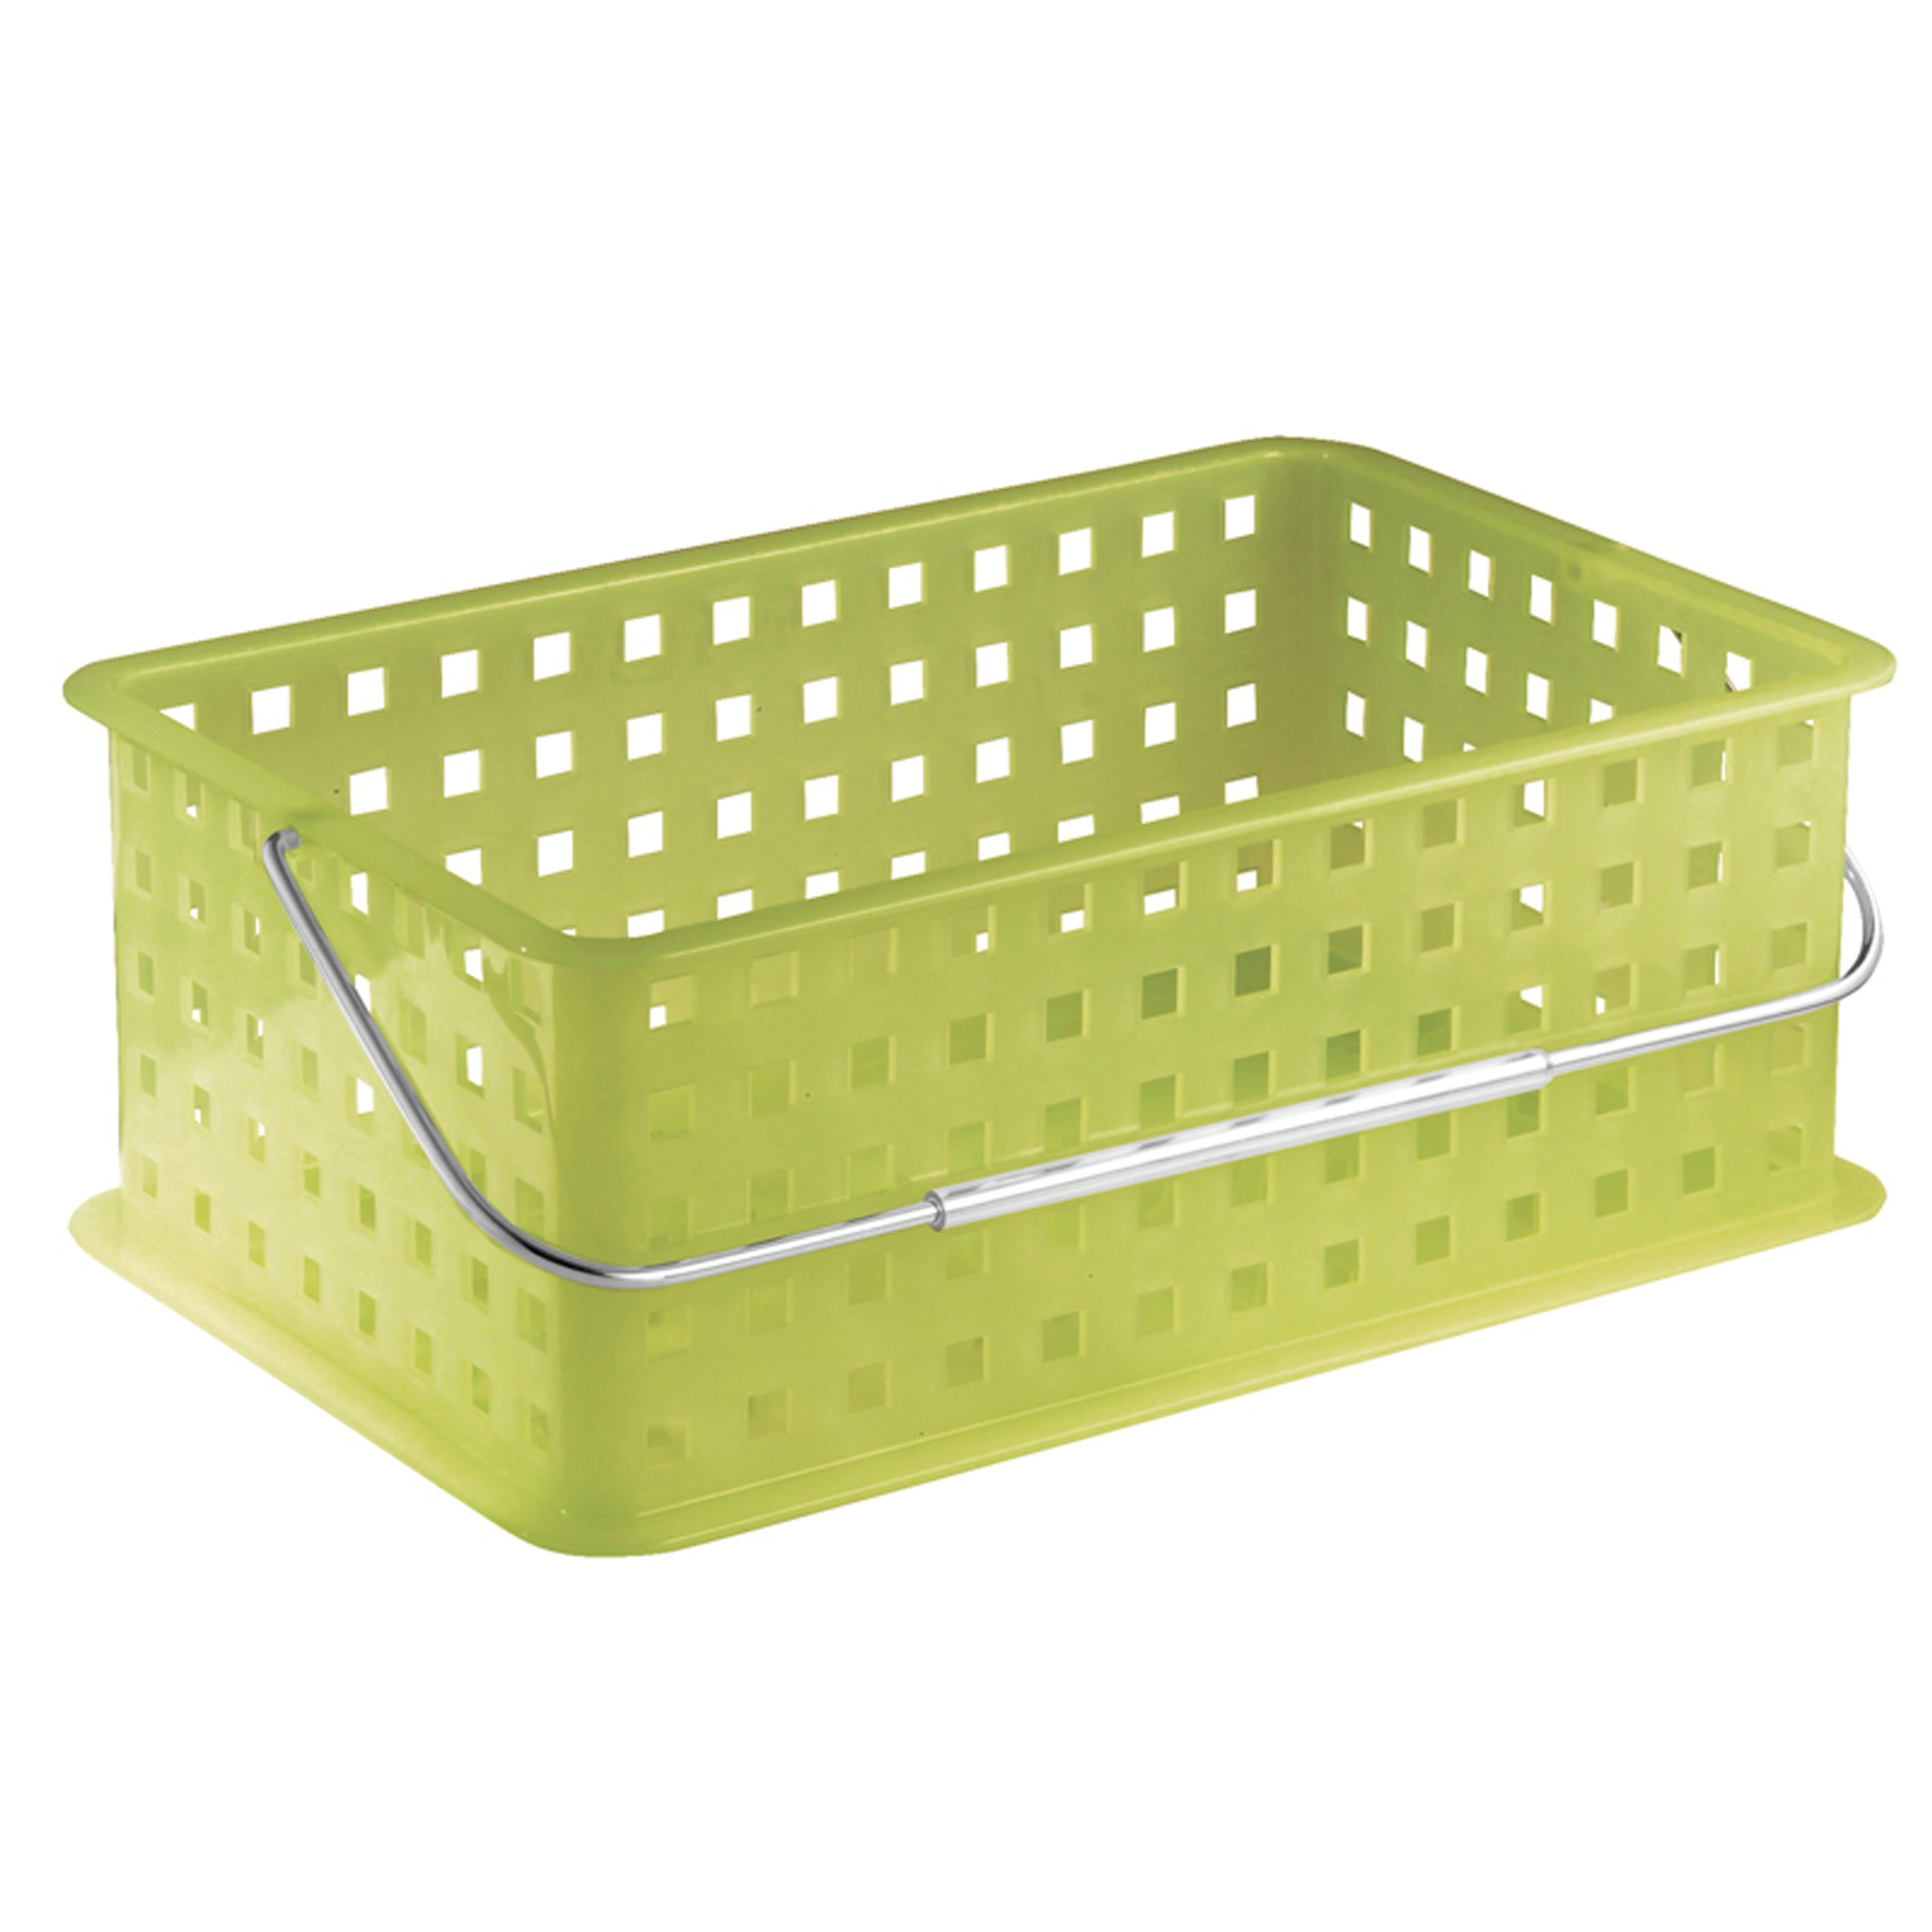 InterDesign Storage Organizer Basket, with Handle for Bathroom, Health and Beauty Products - Medium, Pear